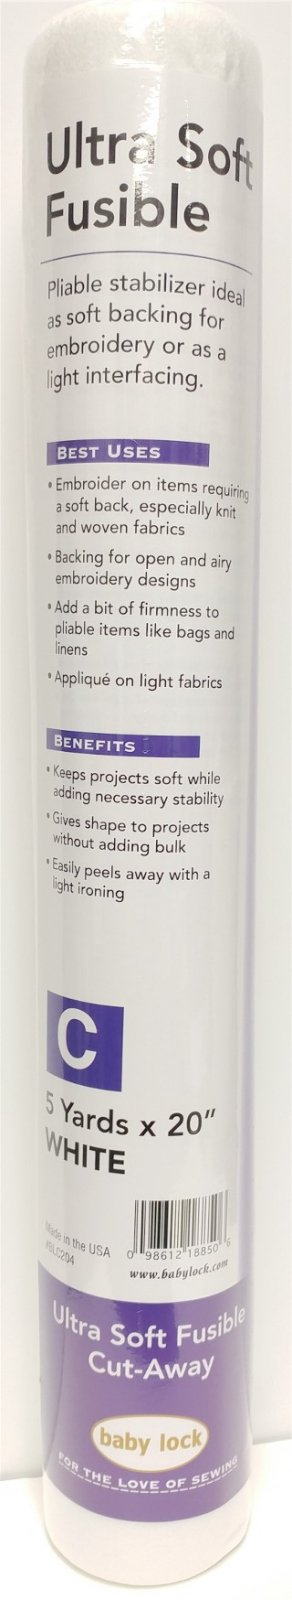 Ultra Soft Fusible Stabilizer BLC204 - 5yd x 20